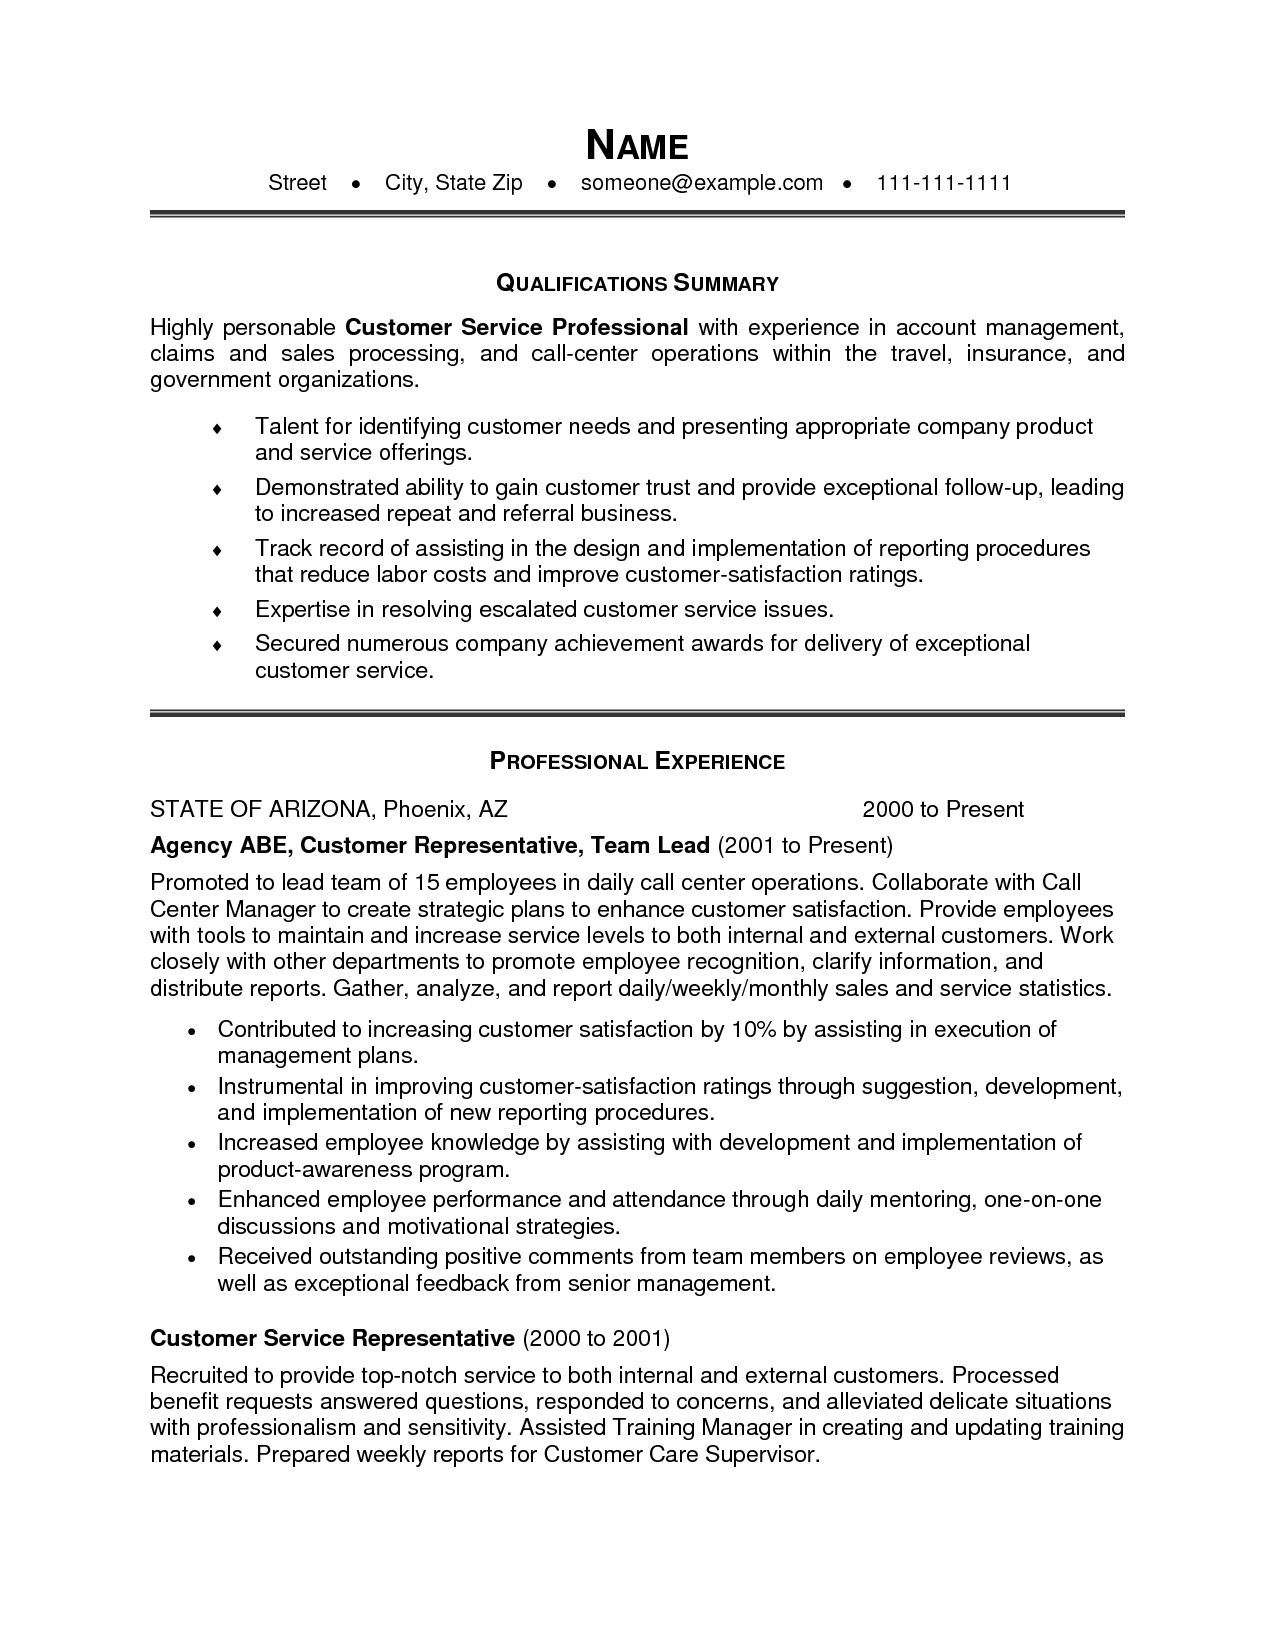 resume Resume Cls lyx report template adding custom class files cls to in enhance resume